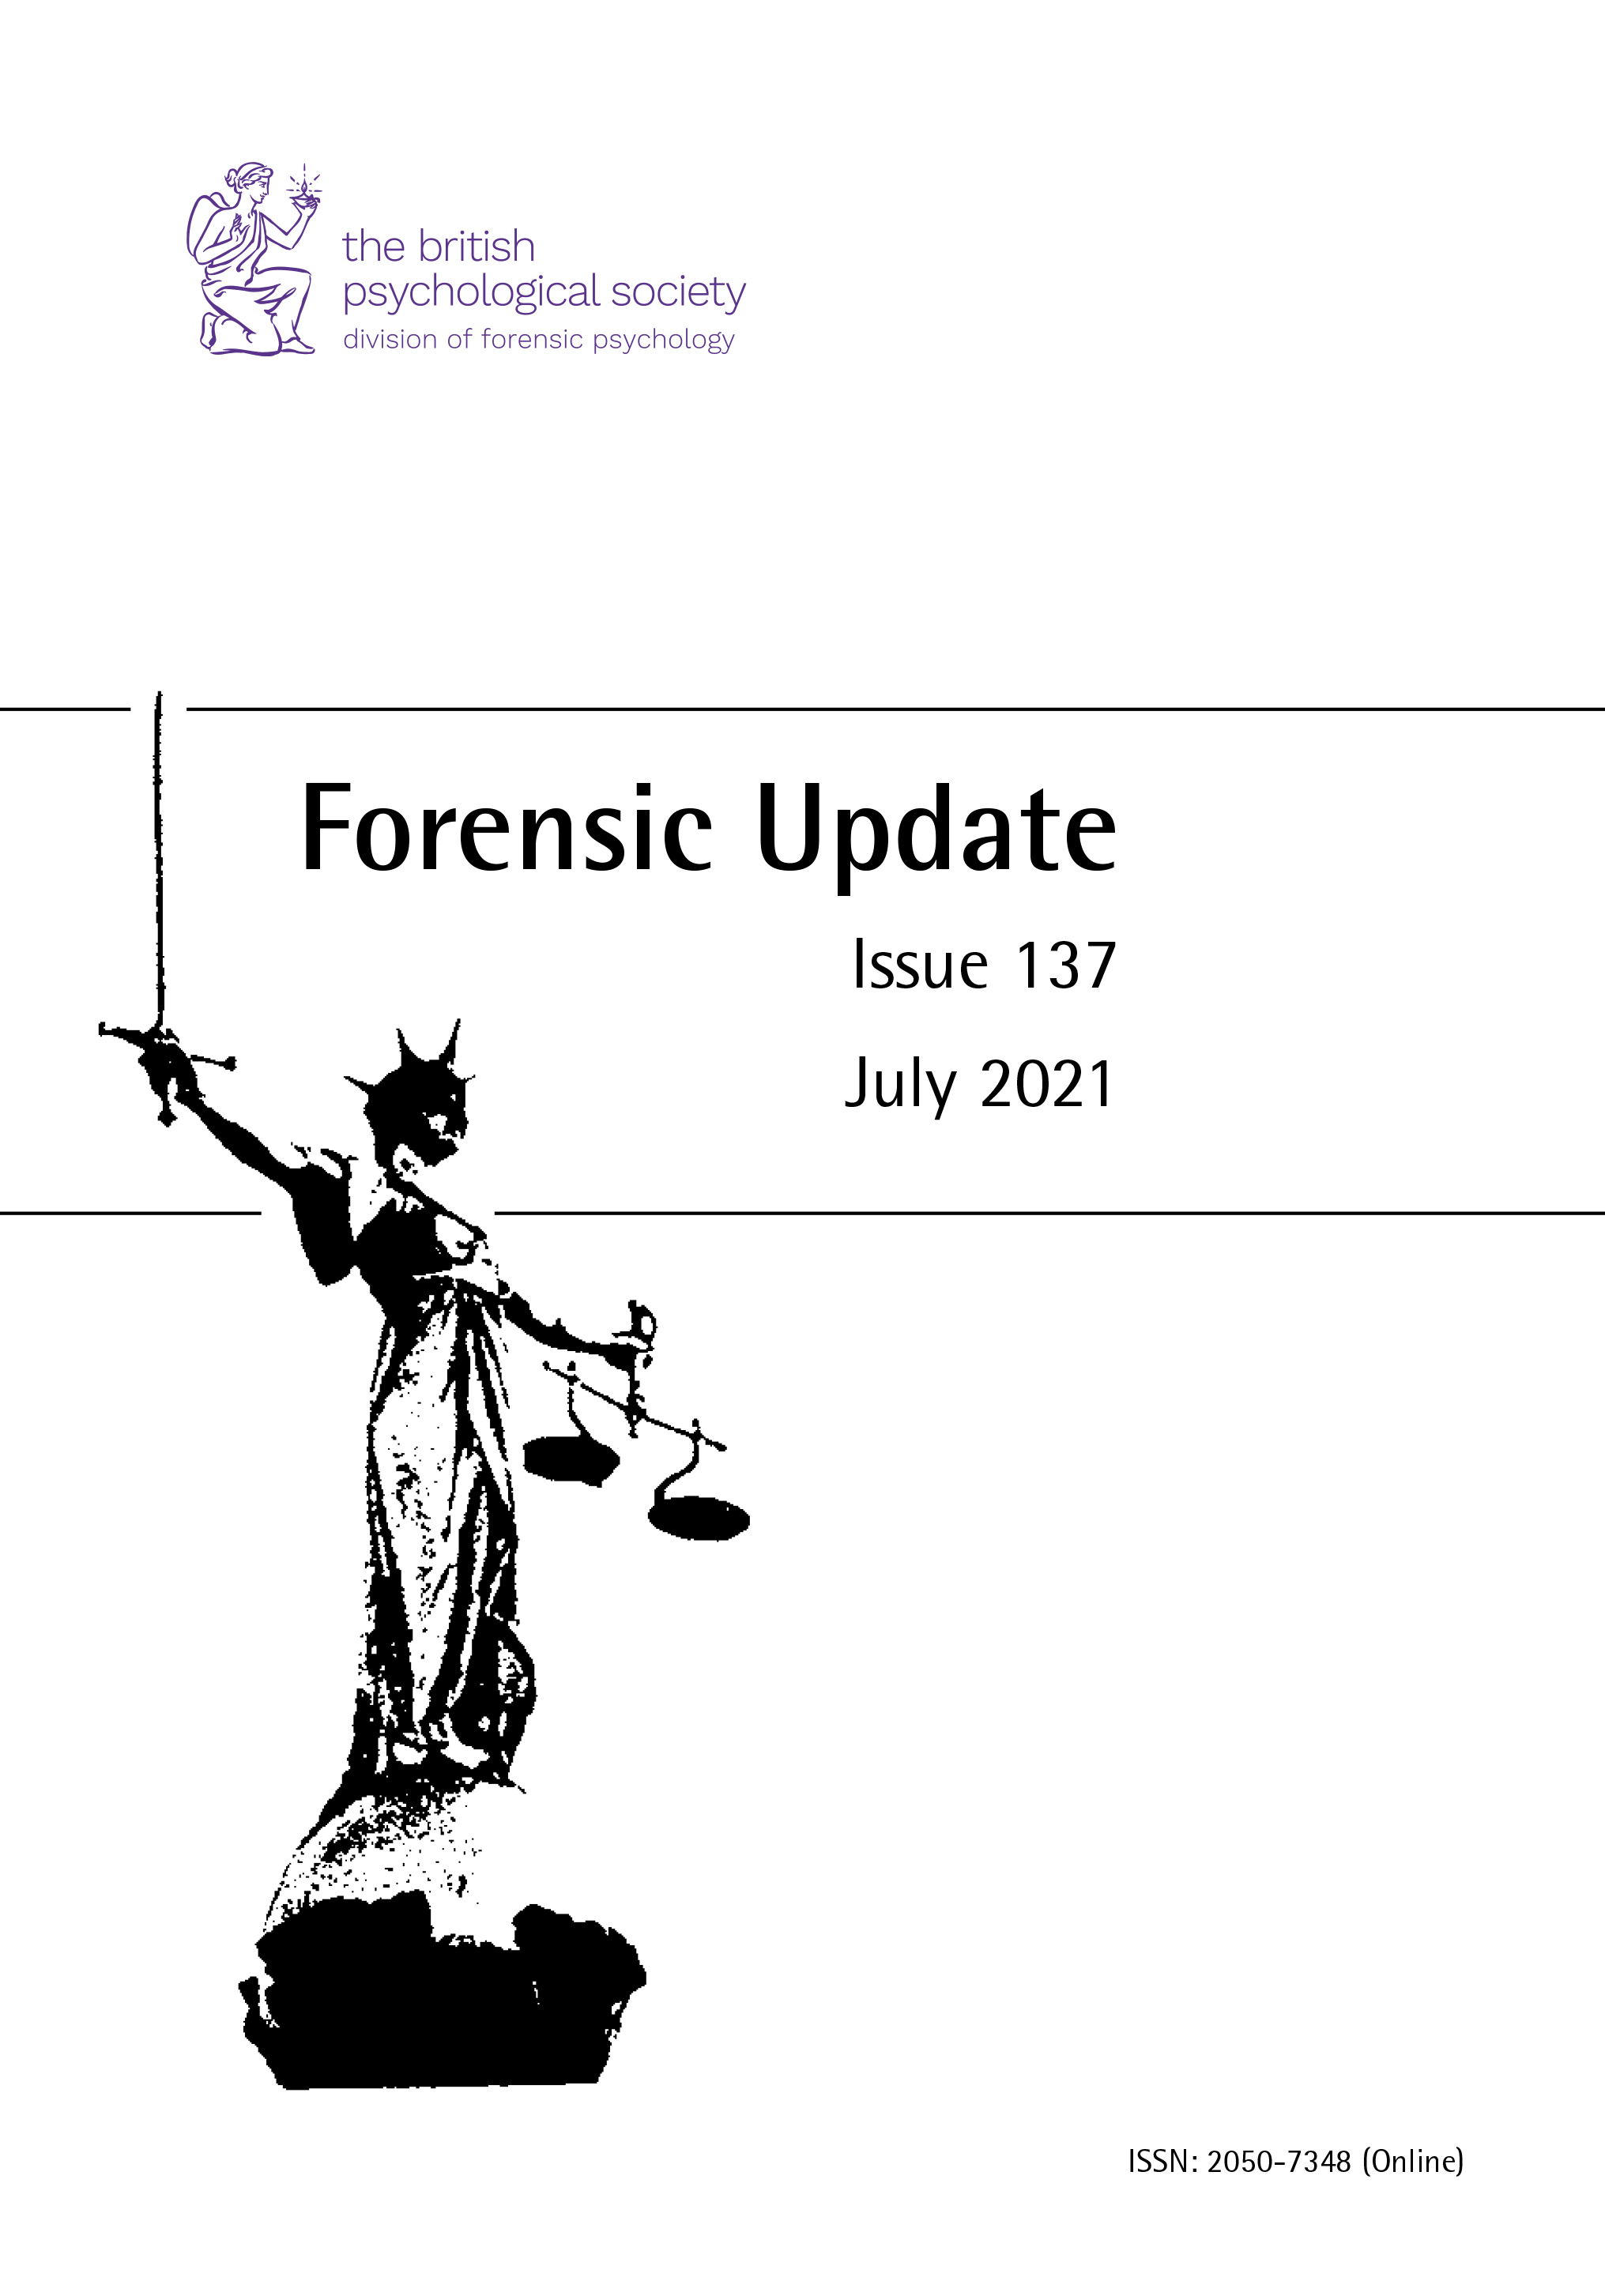 Forensic Update No 137 July 2021  cover image